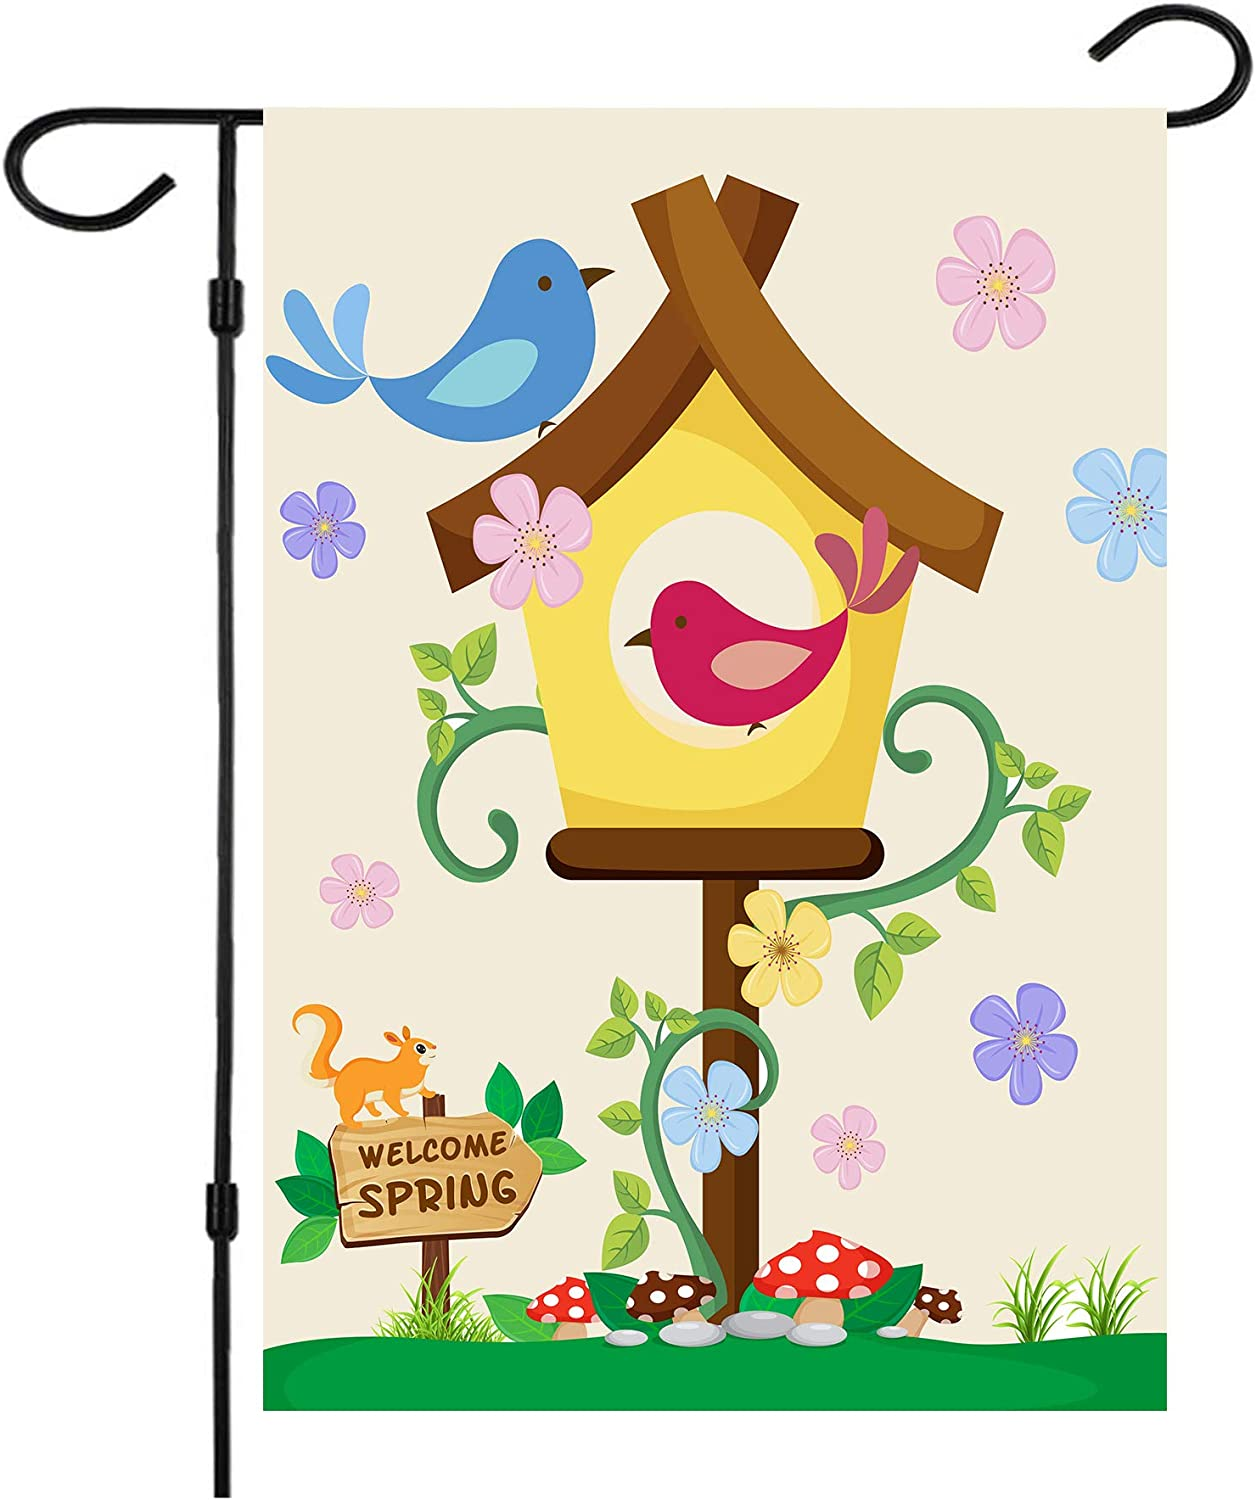 Spring Garden Flag,Hello Spring Flag Double Sided Welcome Burlap Seasonal House and Bird Spring House Flags 12x18 Inch Summer Yard Signs Outdoor Decor for Homes,Gardens,Patio or Lawn